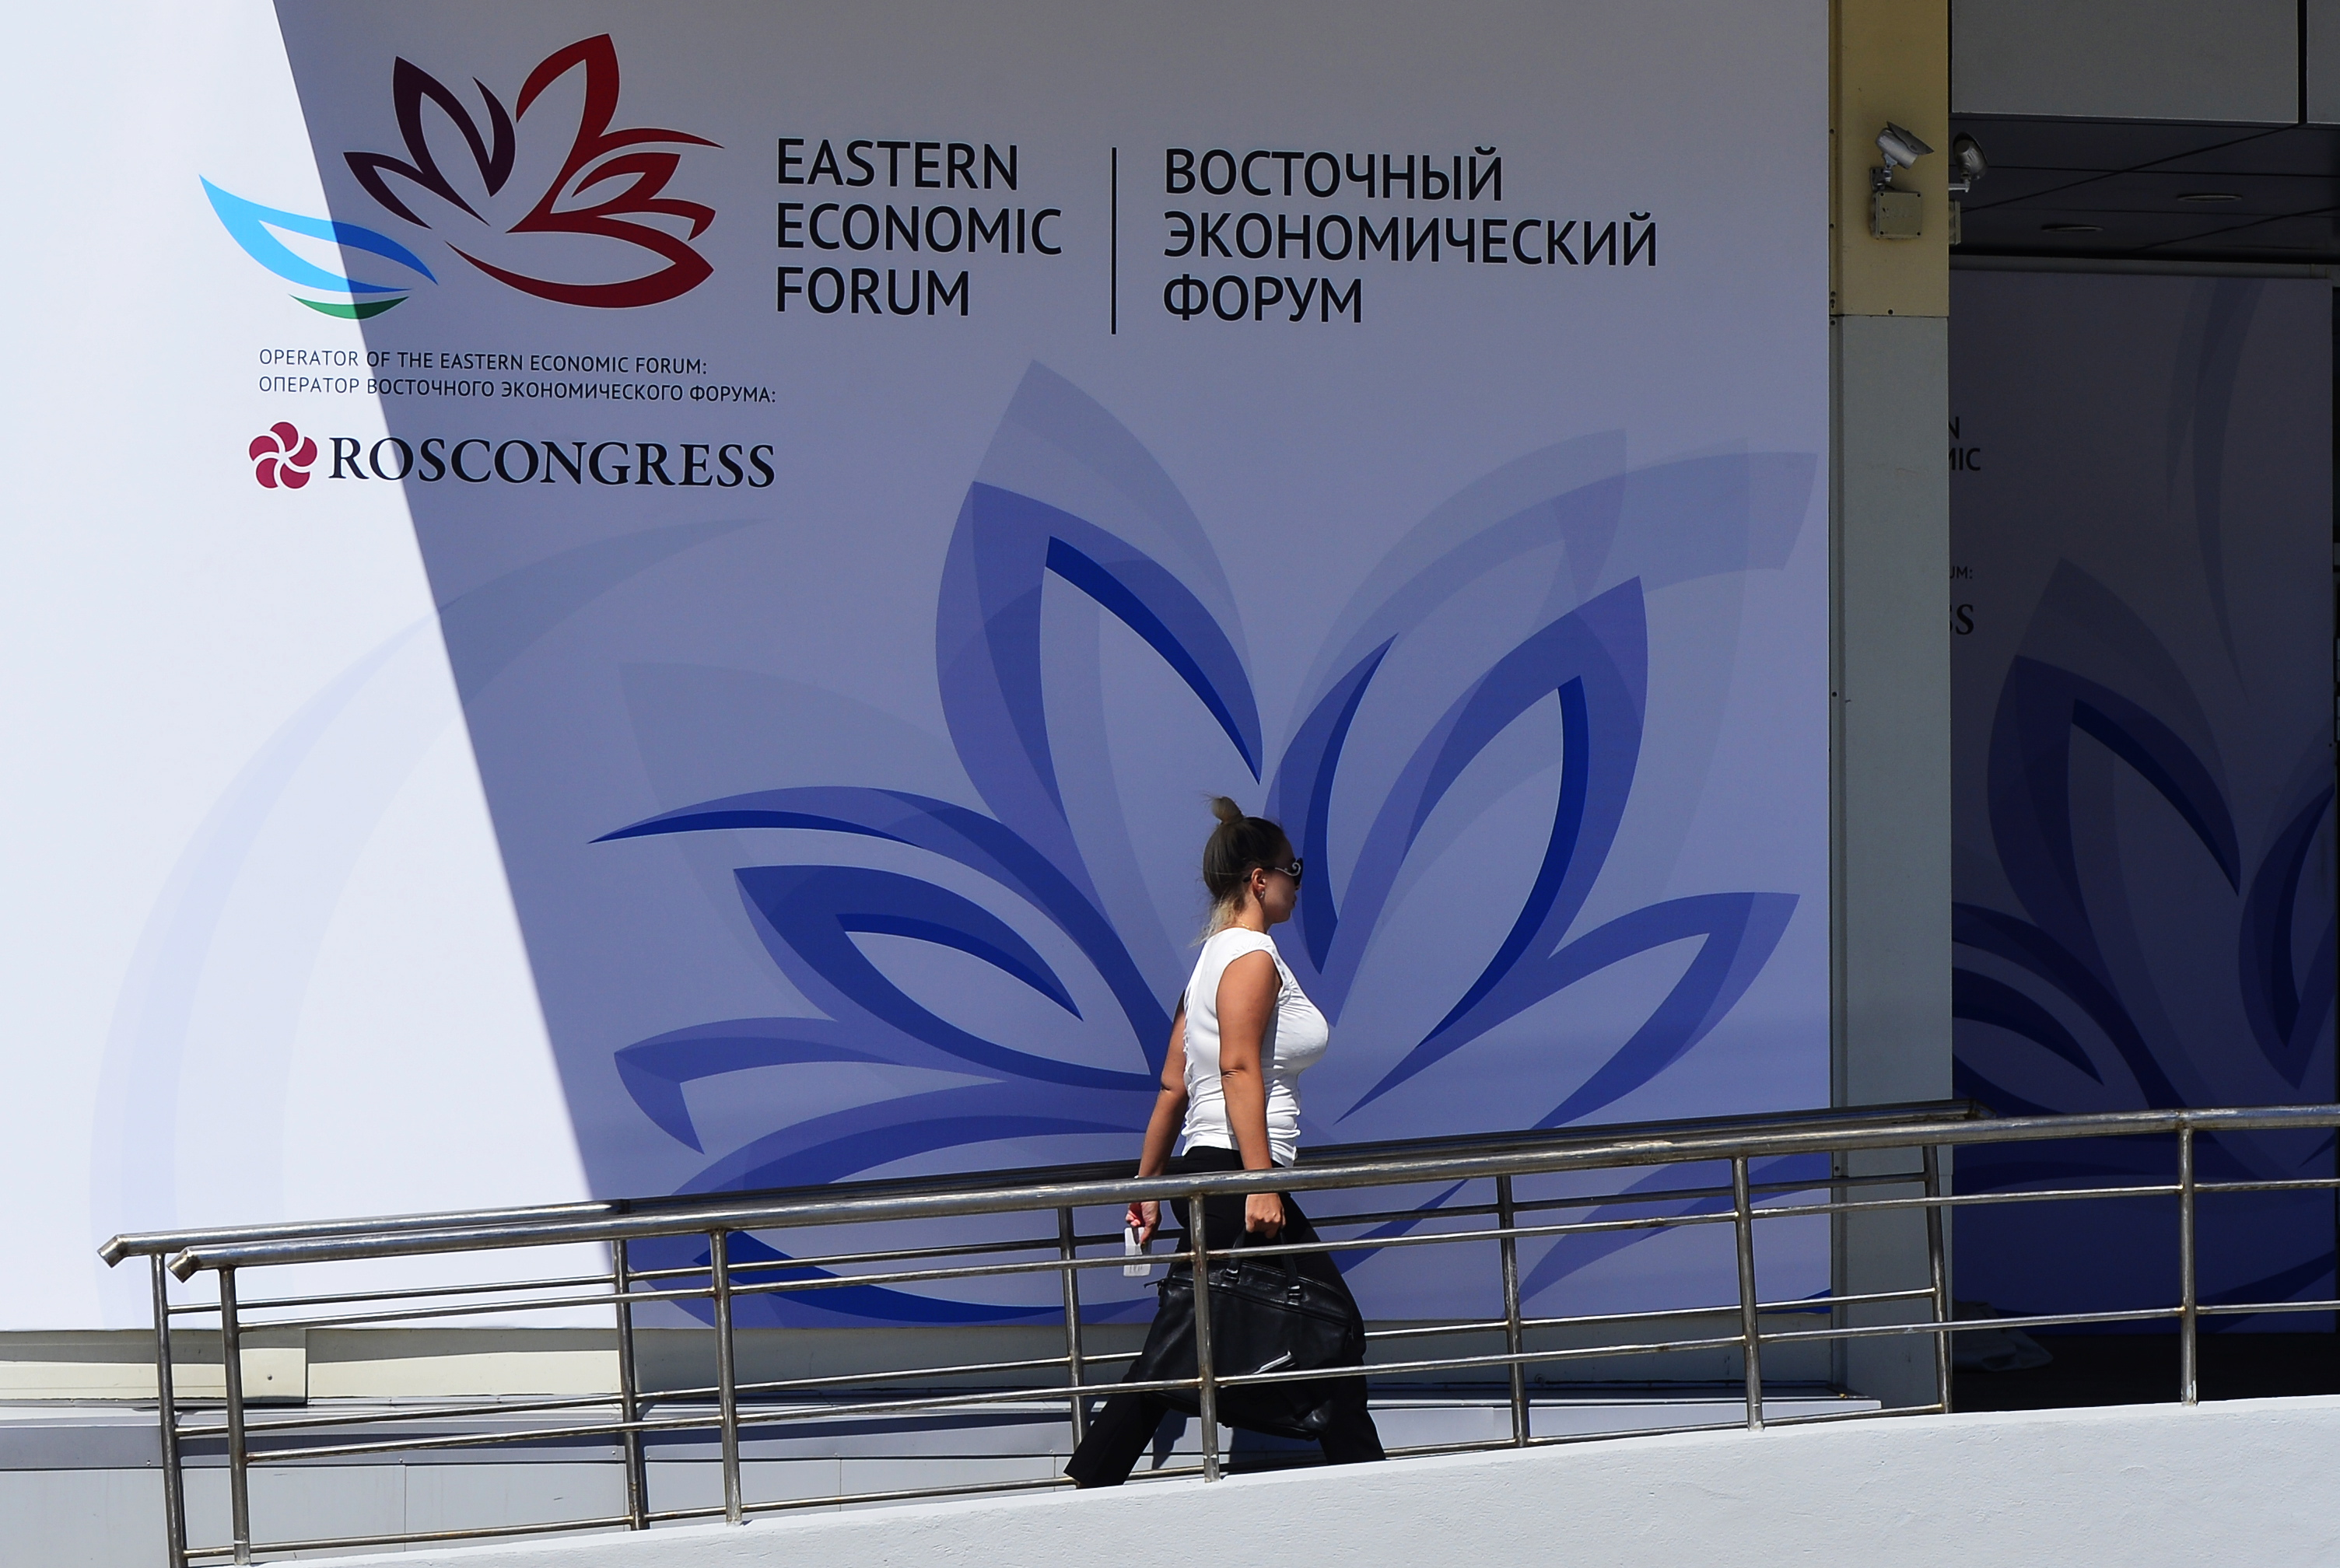 Large delegations from Japan and South Korea are expected at the Eastern Economic Forum.